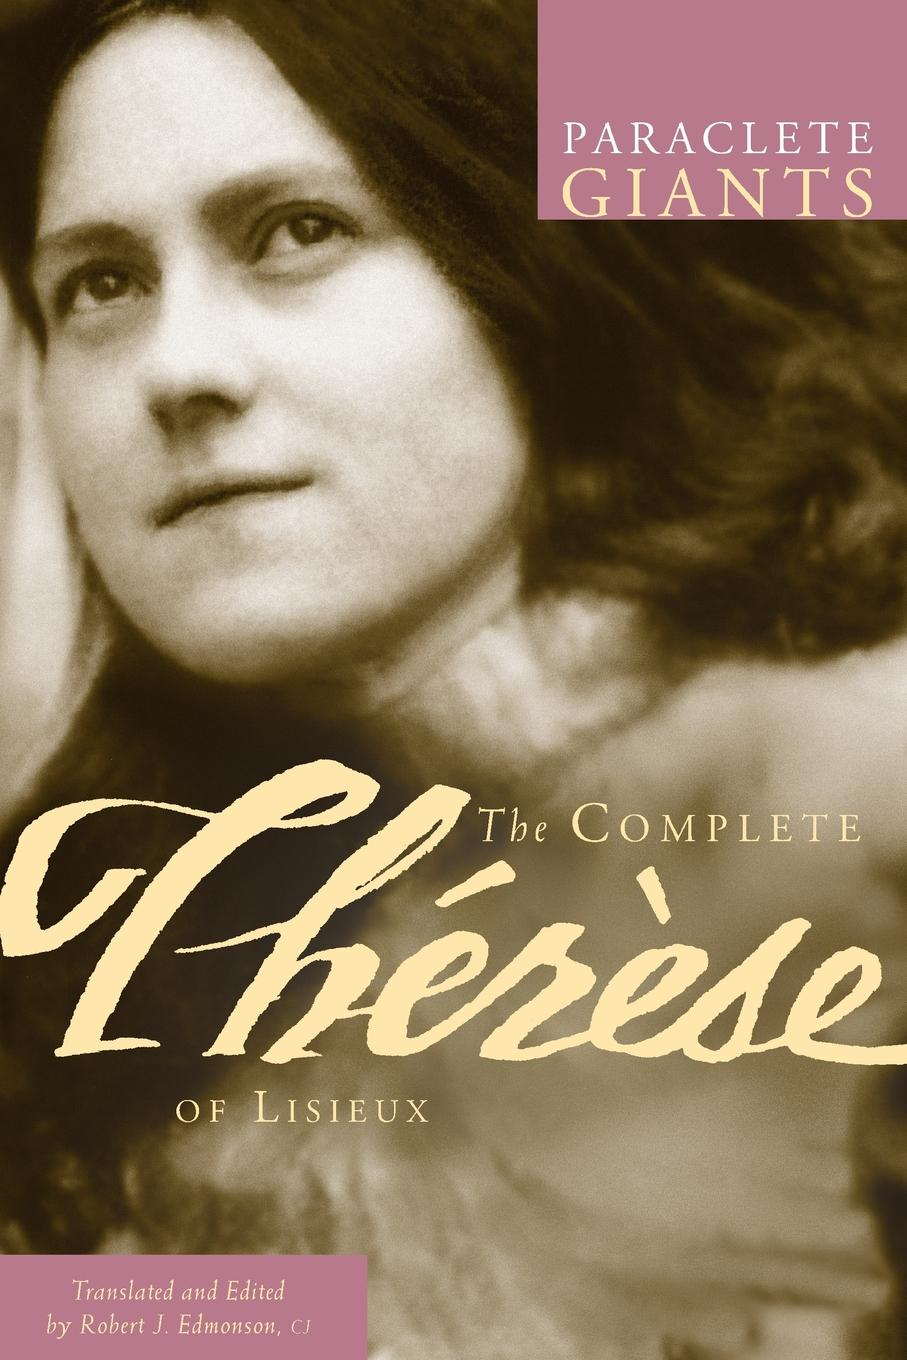 Фото - Robert Edmonson Complete Therese of Lisieux therese of lisieux michael day story of a soul the autobiography of st therese of lisieux